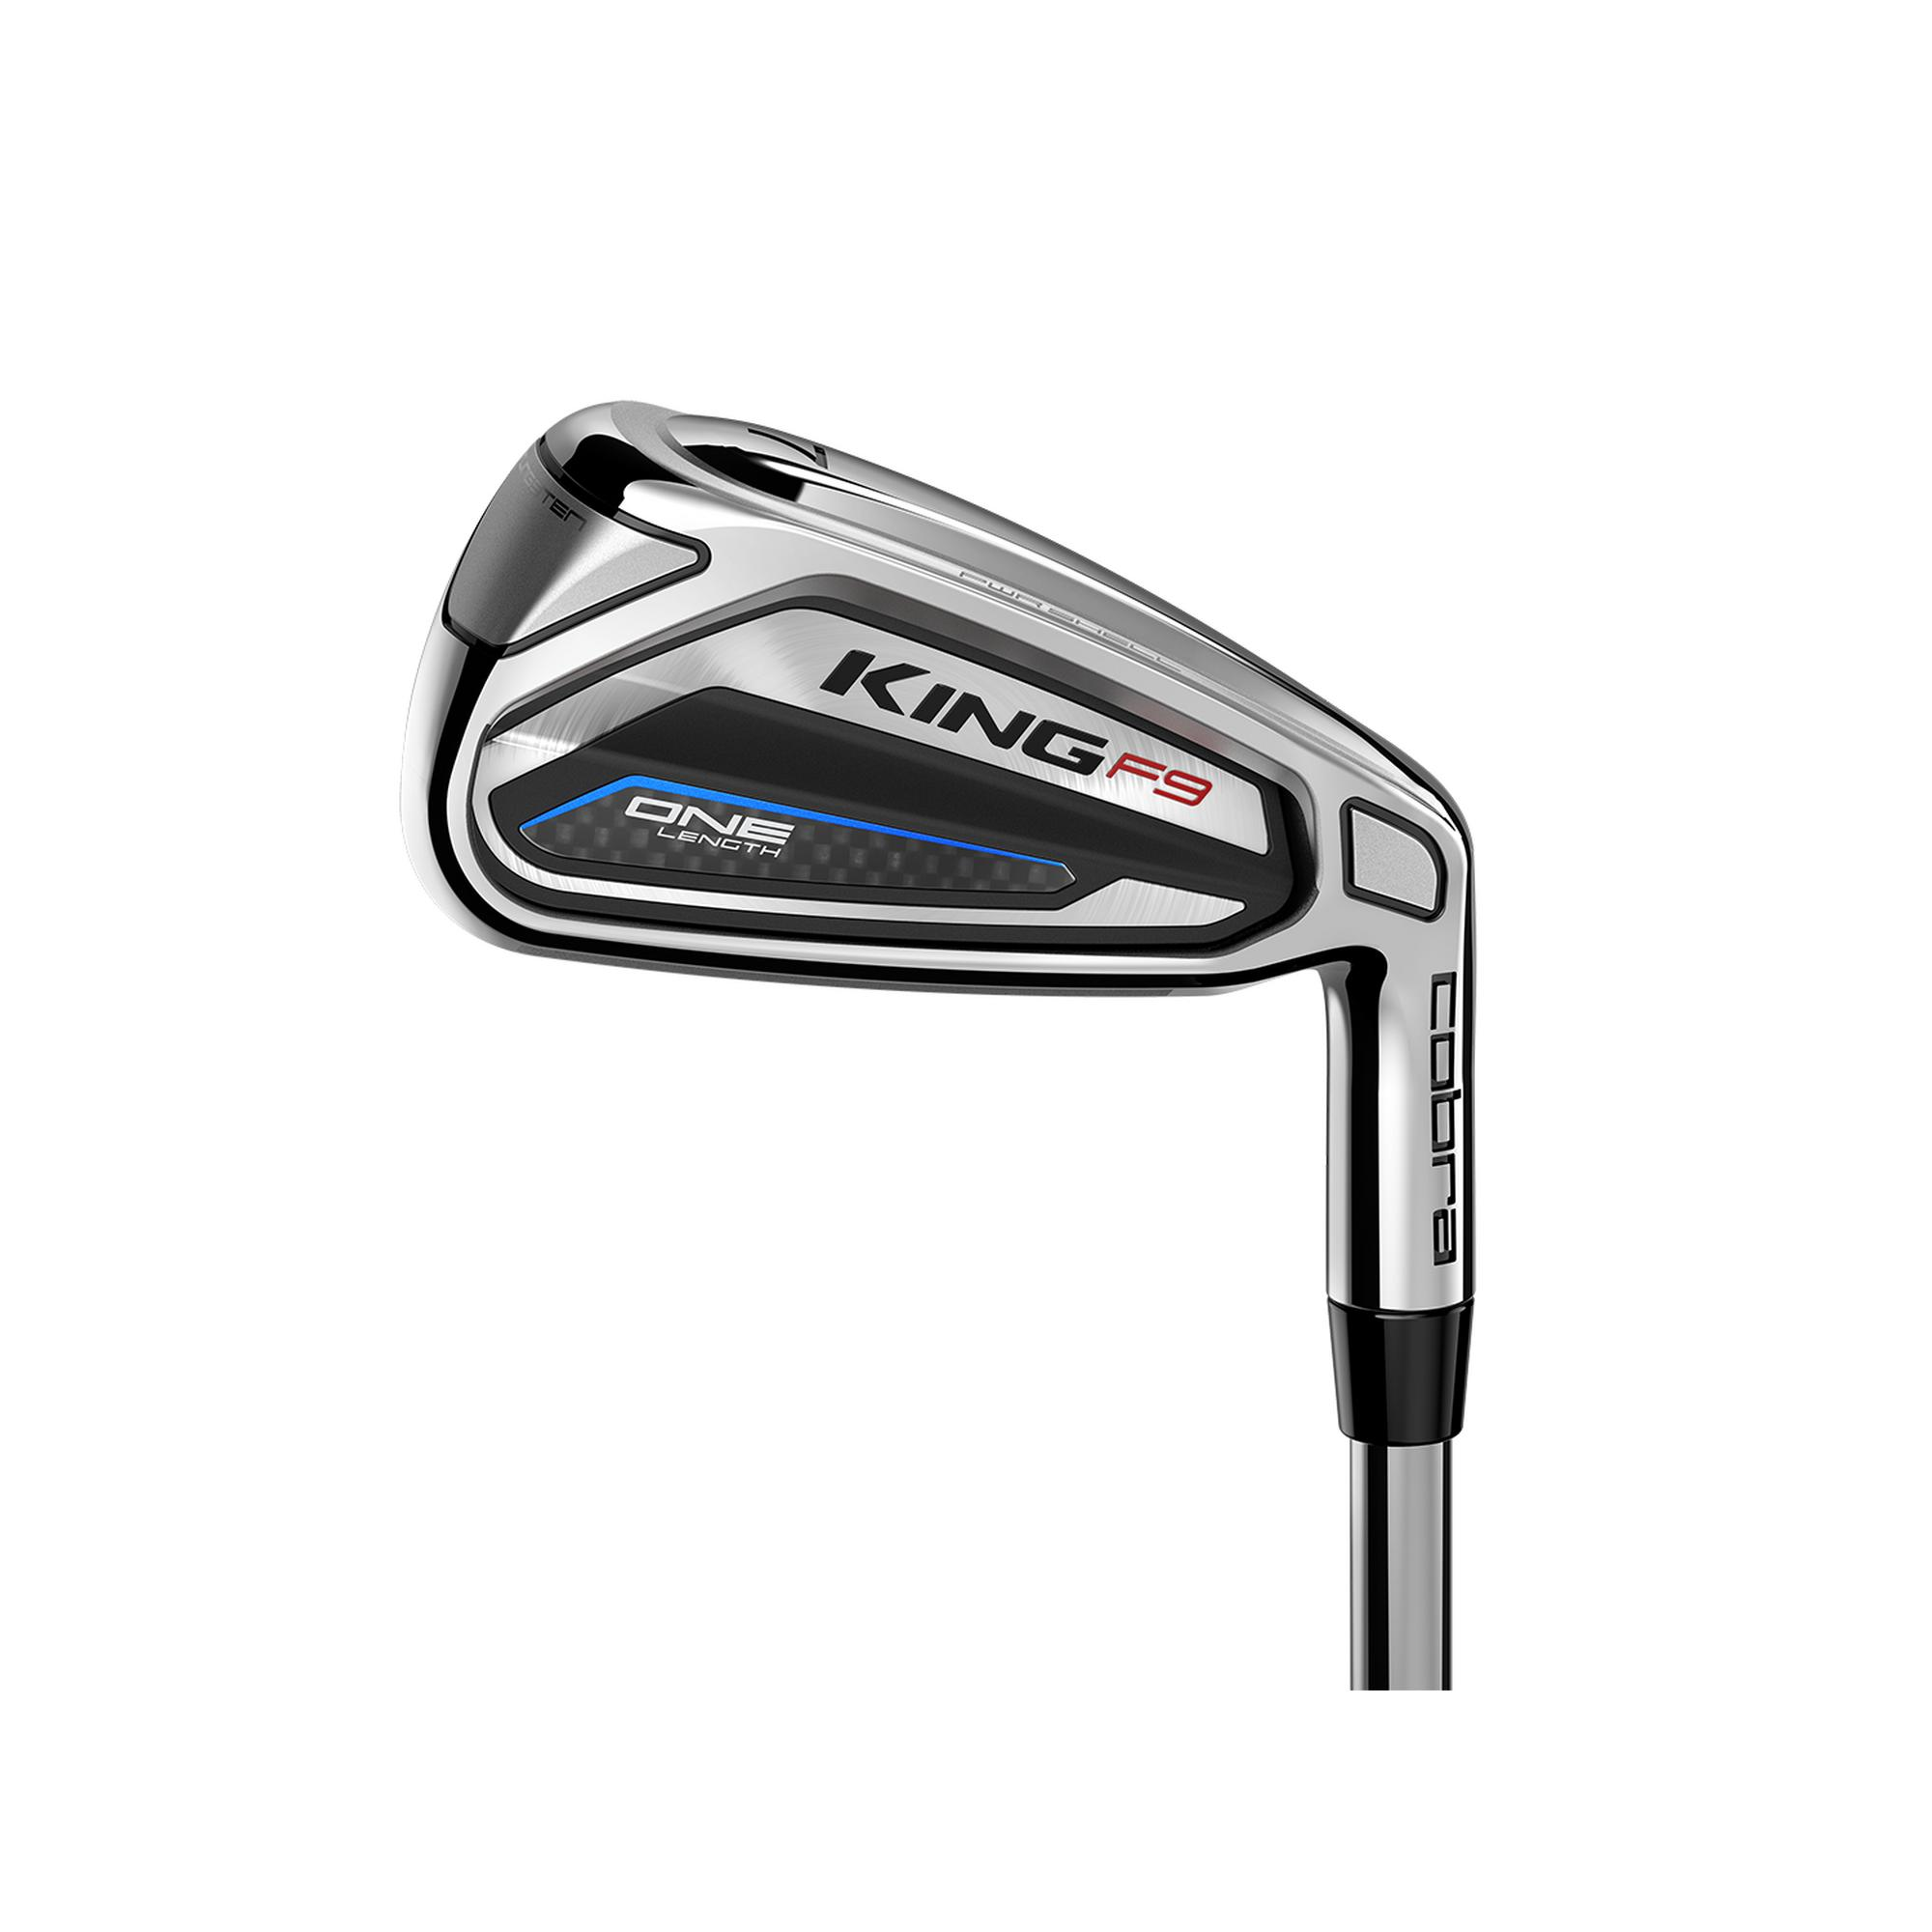 King F9 One Length 5-PW, GW Iron Set with Steel Shafts